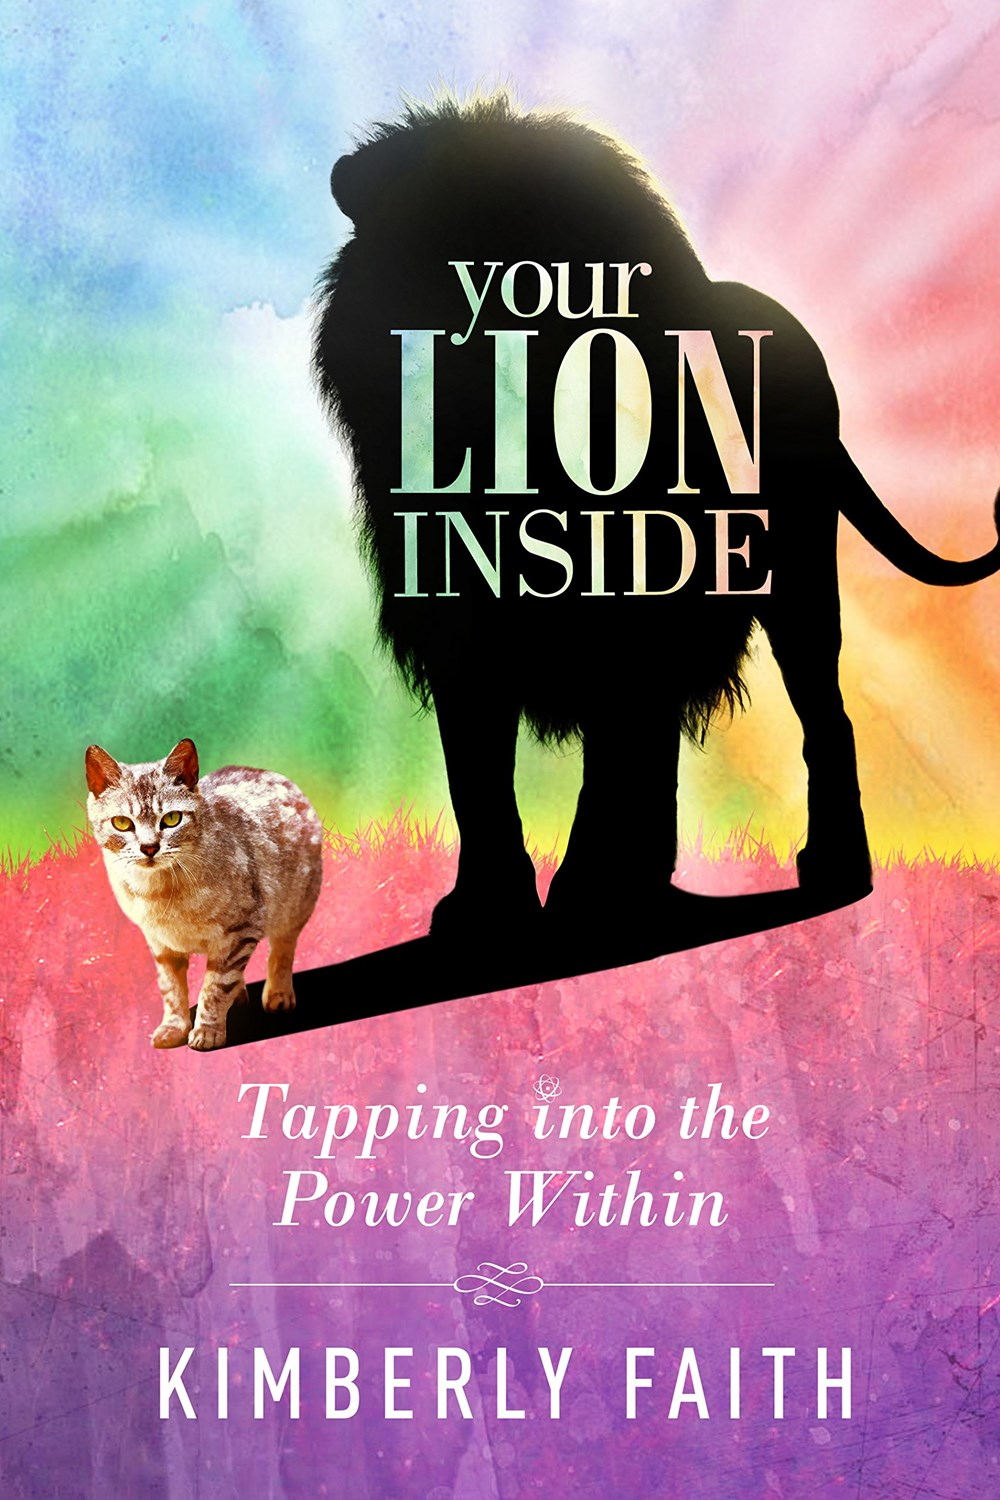 Your Lion Inside Tapping Into the Power Within